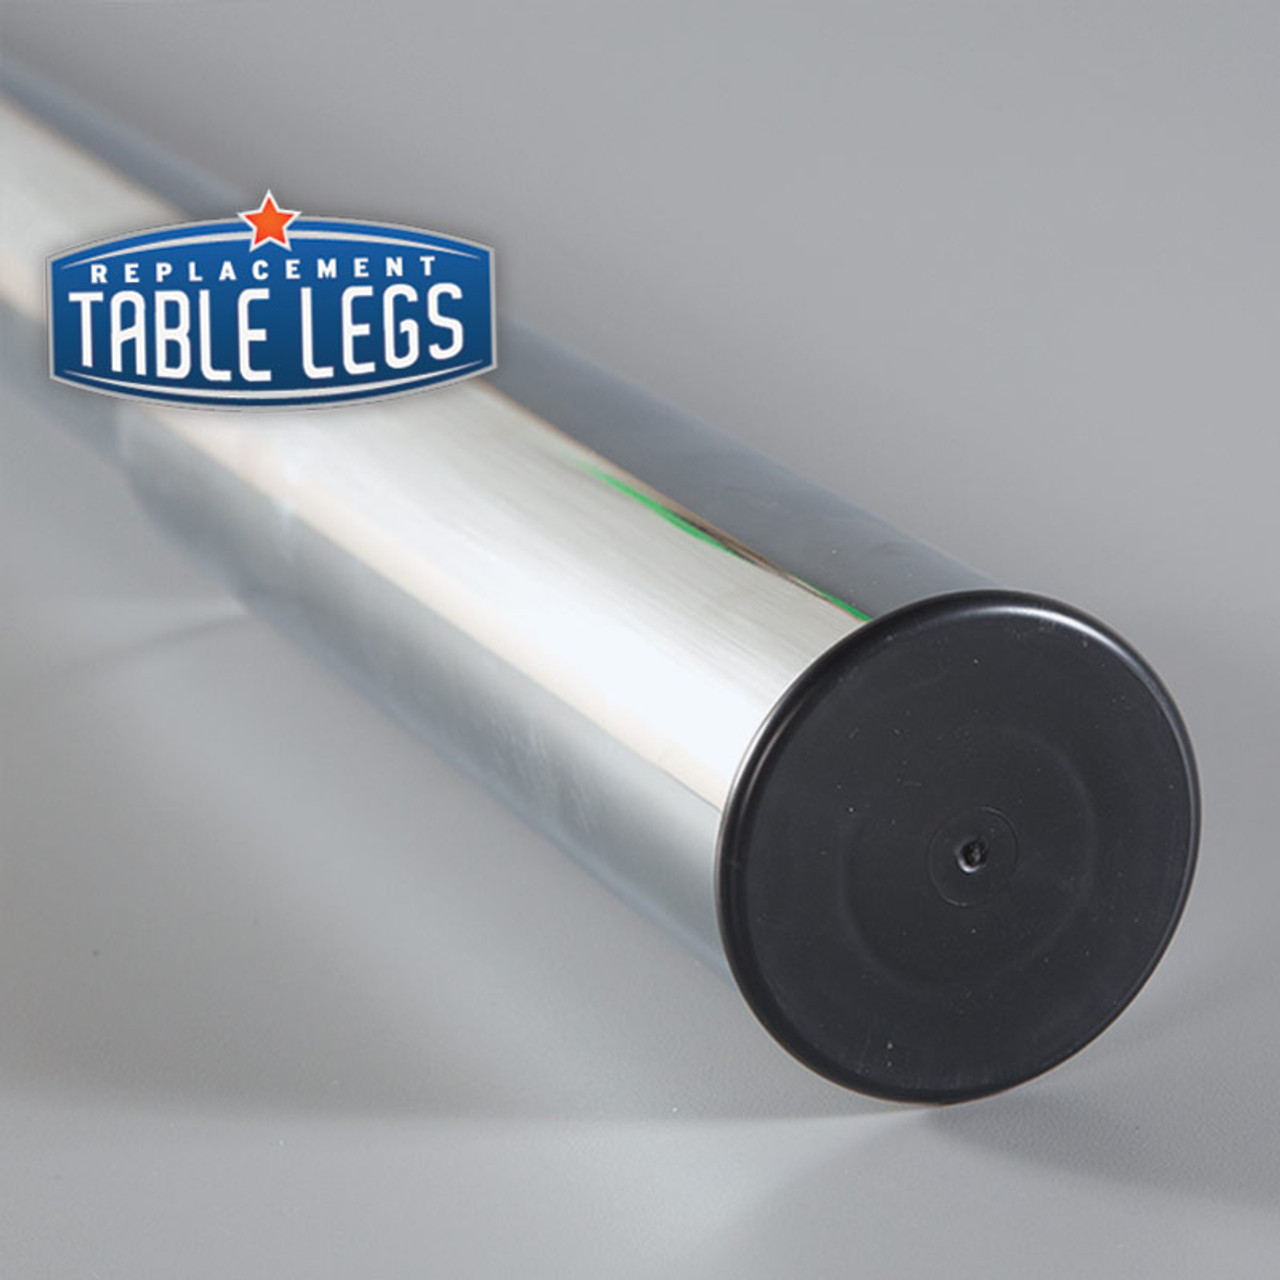 Studio Telescoping Table Leg foot cover detail - replacementtablelegs.com